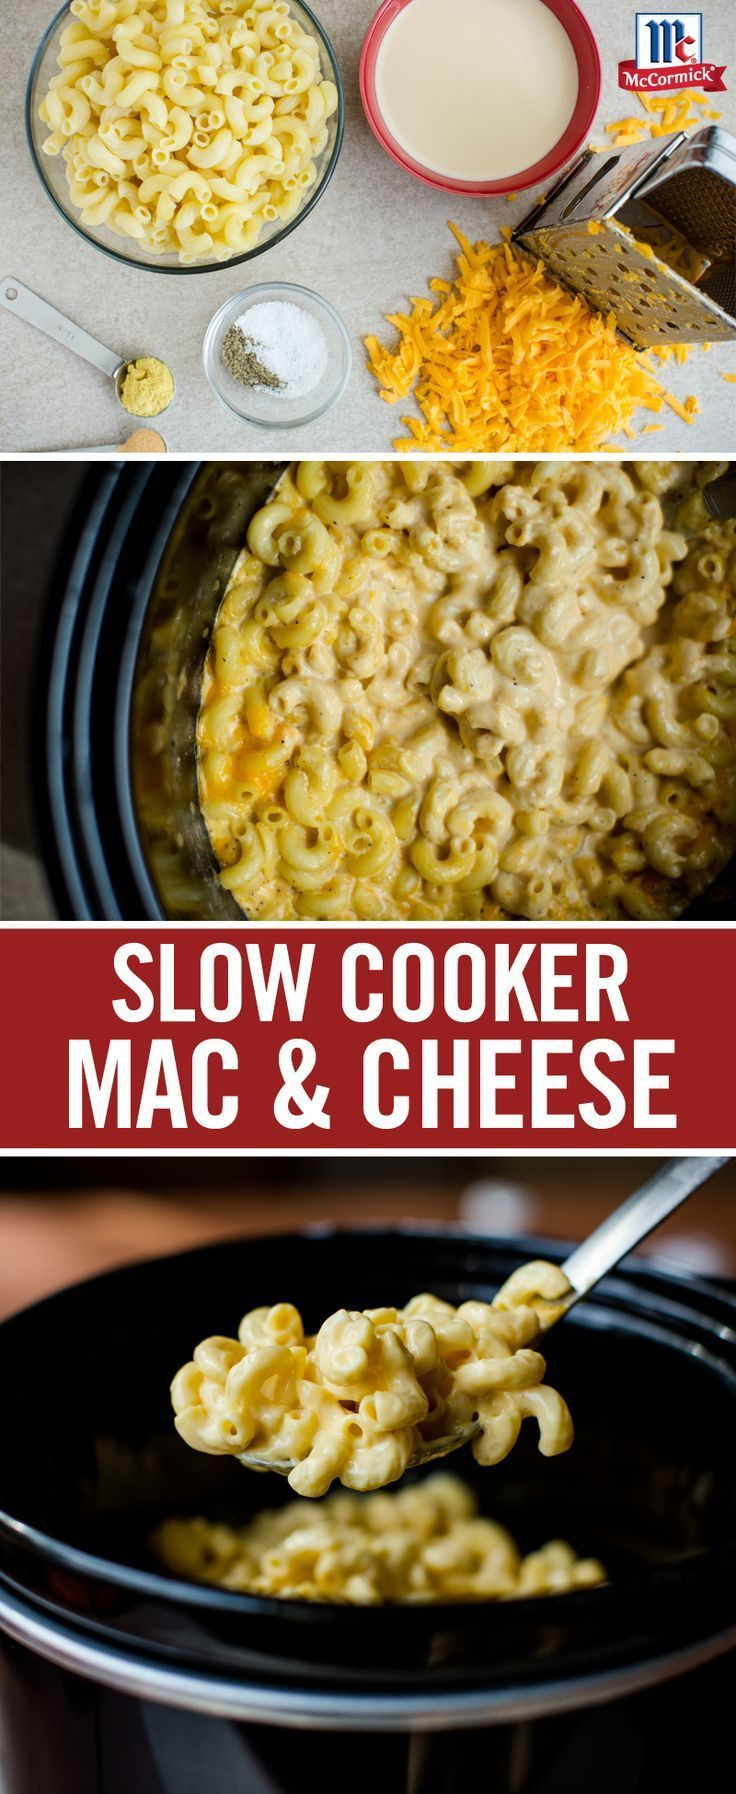 Looking for a new slow cooker recipe? This easy homemade slow cooker mac and cheese is perfect as a Thanksgiving side dish. Add cooked pasta to the slow cooker with Cheddar cheese and evaporated milk for an easy one pot dish that guests are sure to love.